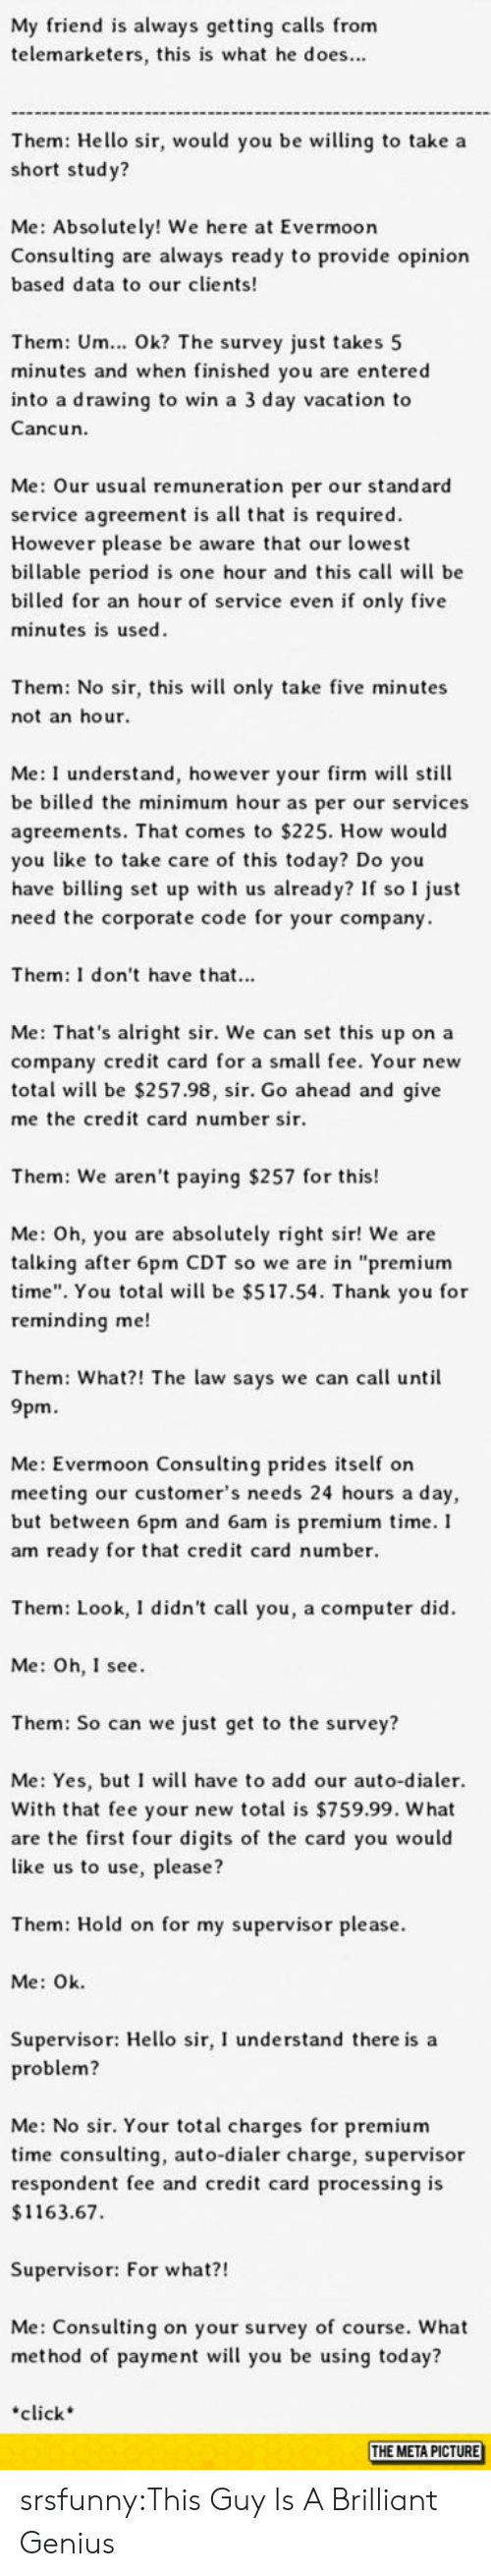 """as per: My friend is always getting calls from  telemarketers, this is what he does...  Them: Hello sir, would you be wing to take a  short stud y?  Me: Absolutely! We here at Evermoor  Consulting are always ready to provide opinion  based data to our clients  Them: Um... Ok? The survey just takes 5  minutes and when finished you are entered  into a drawing to win a 3 day vacation to  Cancun.  Me: Our usual remuneration per our standard  service agreement is all that is required  However please be aware that our lowest  billable period is one hour and this call will be  billed for an hour of service even if only five  minutes is used  Them: No sir, this wil only take five minutes  not an hour  Me: I understand, however your firm will still  be billed the minimum hour as per our services  agreements. That comes to $225. How would  you like to take care of this today? Do you  have billing set up with us already? If so I just  need the corporate code for your company  Them: I don't have that...  Me: That's alright sir. We can set this up on a  company credit card for a small fee. Your new  total wil be $257.98, sir. Go ahead and give  me the credit card number sir  Them: We aren't paying $257 for this!  Me: Oh, you are absolutely right sir! We are  talking after 6pm CDT so we are in """"premium  time"""". You total wil be $517.54. Thank you for  reminding me!  Them: What?! The law says we can call until  9pm.  Me: Evermoon Consulting prides self on  meeting our customer's needs 24 hours a day,  but between 6pm and 6am is premium time.I  am ready for that credit card number.  Them: Look, I didn't call you, a computer did  Me: Oh, I see  Them: So can we just get to the survey?  Me: Yes, but I will have to add our auto-dialer.  With that fee your new total is $759.99. What  are the first four digits of the card you would  like us to use, please?  Them: Hold on for my supervisor please.  Me: Ok  Supervisor: Hello sir, I understand there is a  roblem?  Me: No sir. Your total char"""